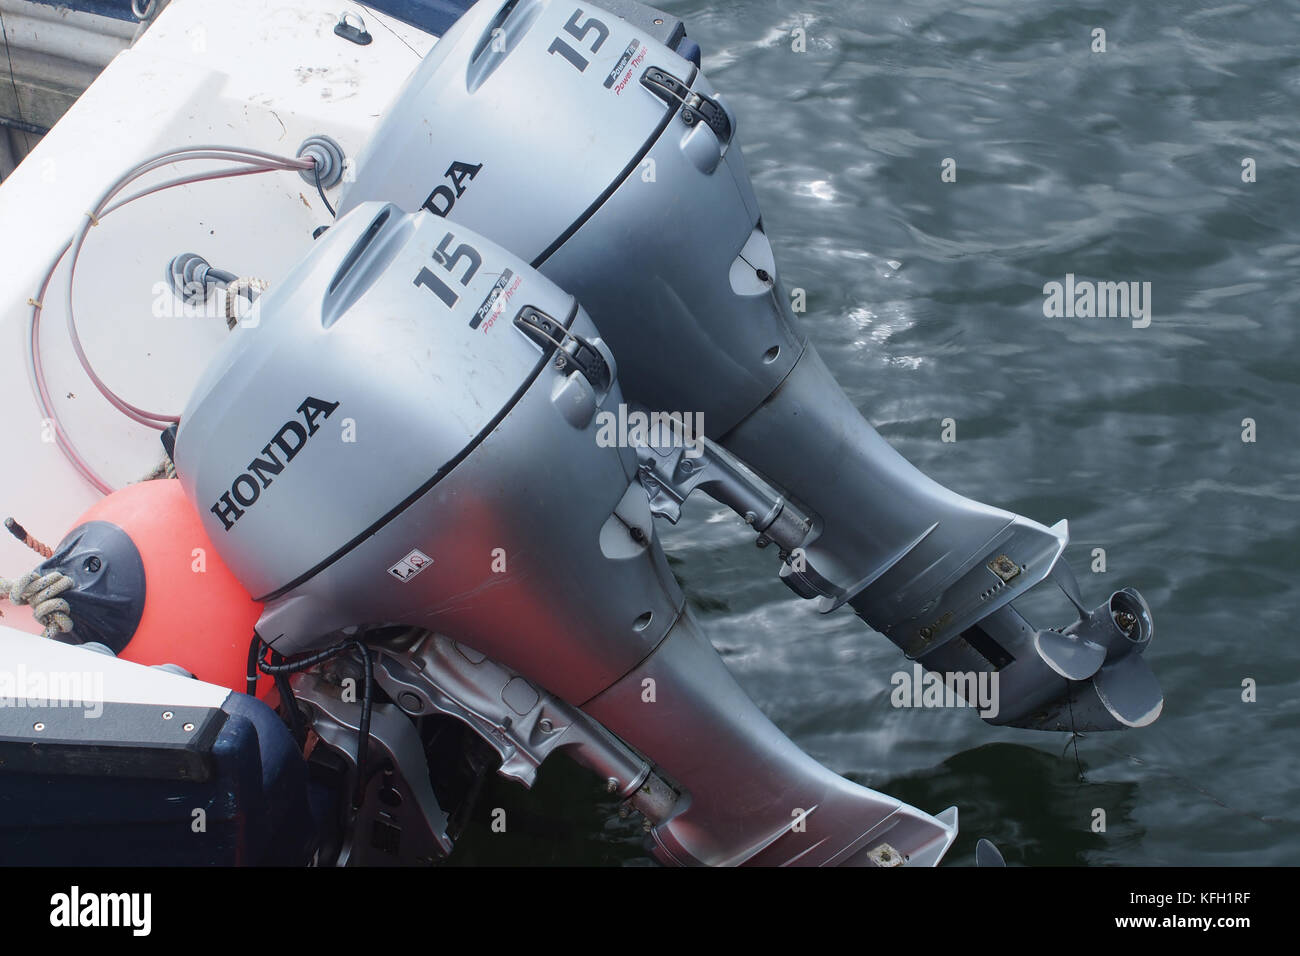 Outboard motors stock photos outboard motors stock for New honda boat motors